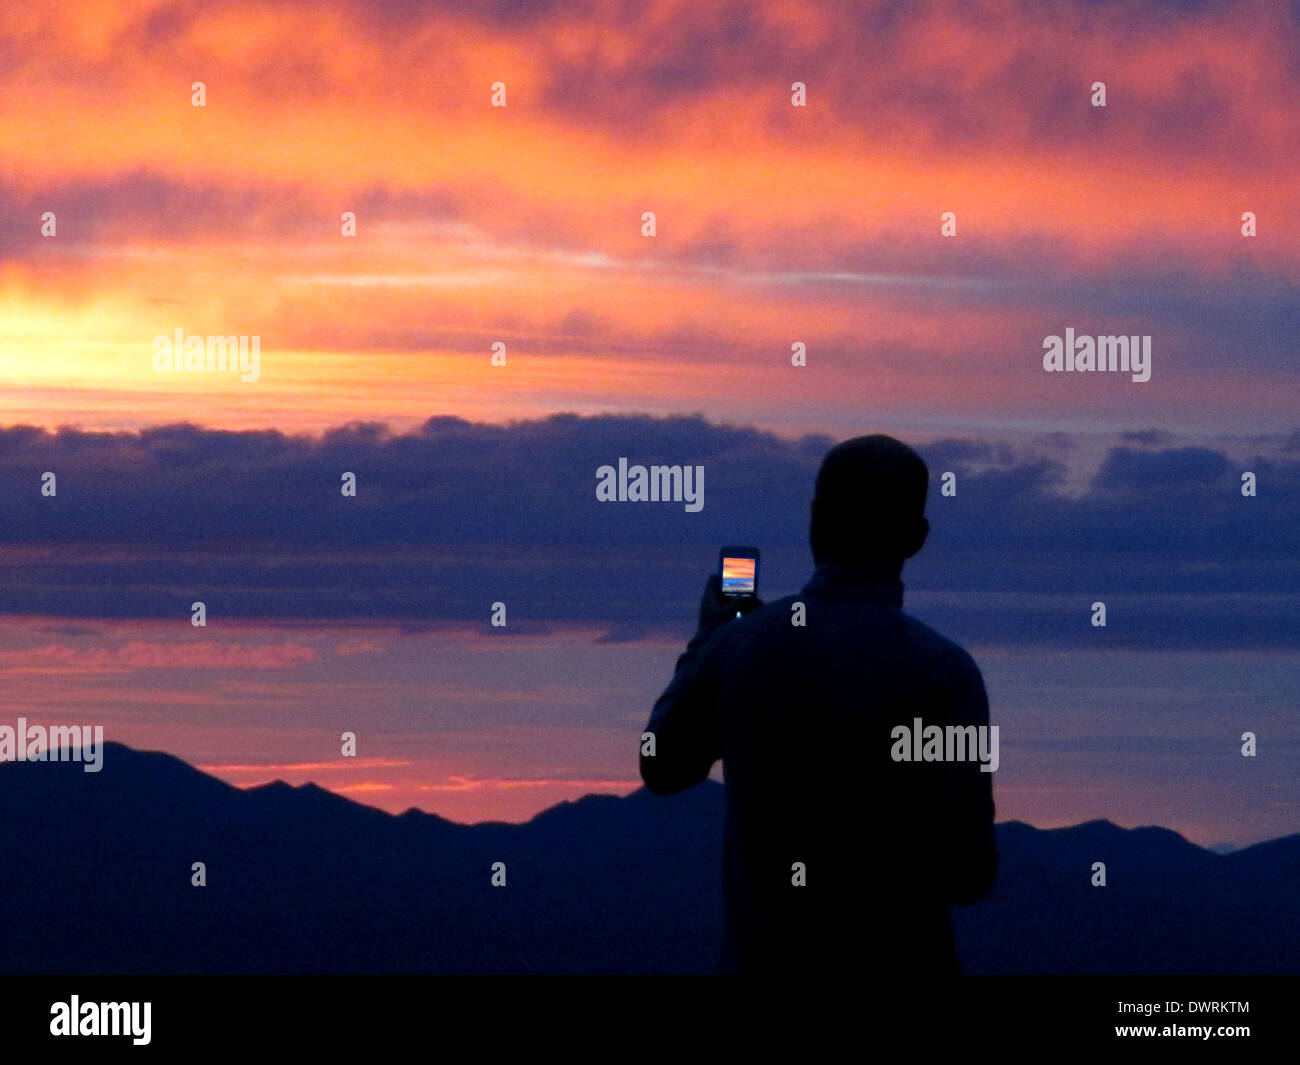 A man takes a photograph of a sunset on his cell phone. - Stock Image